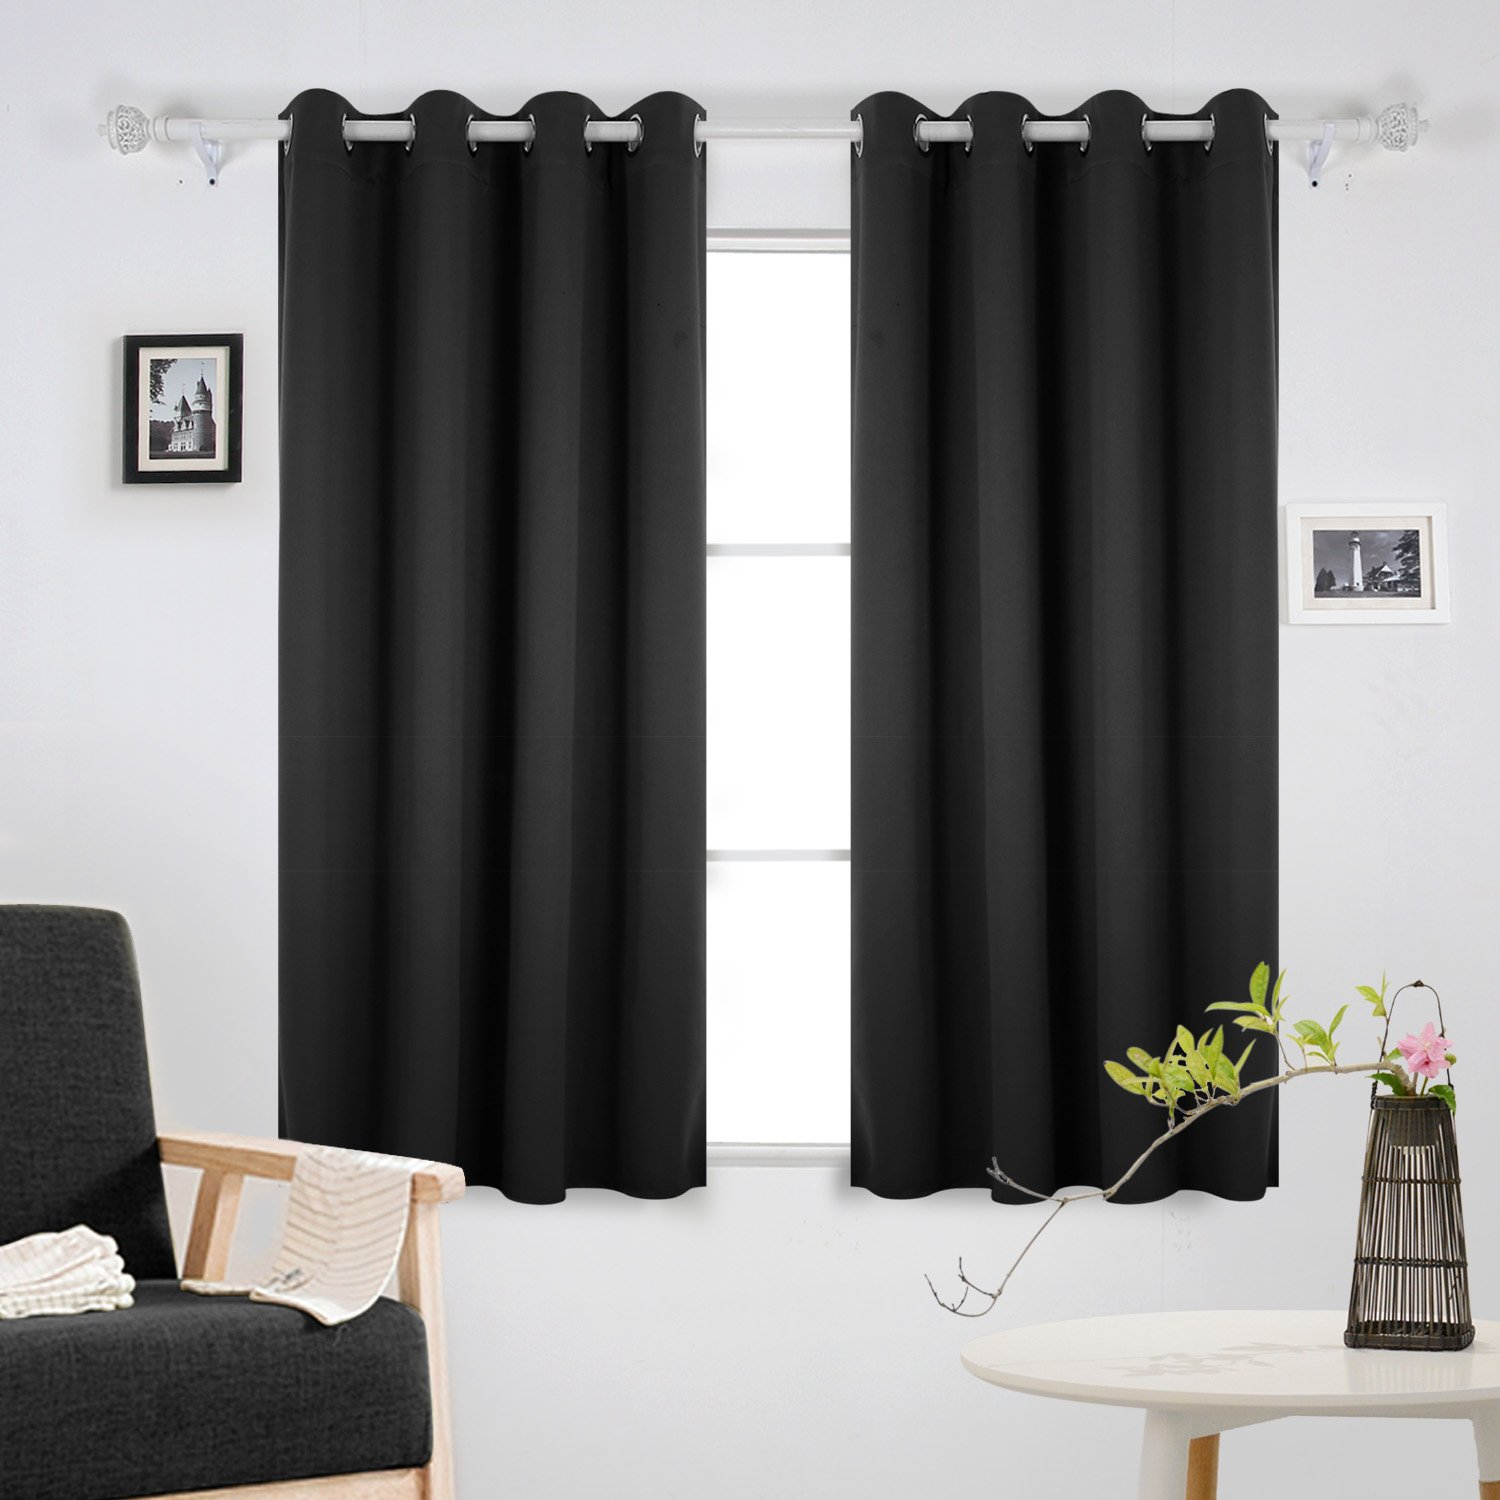 Black bedroom curtains for Super insulated windows